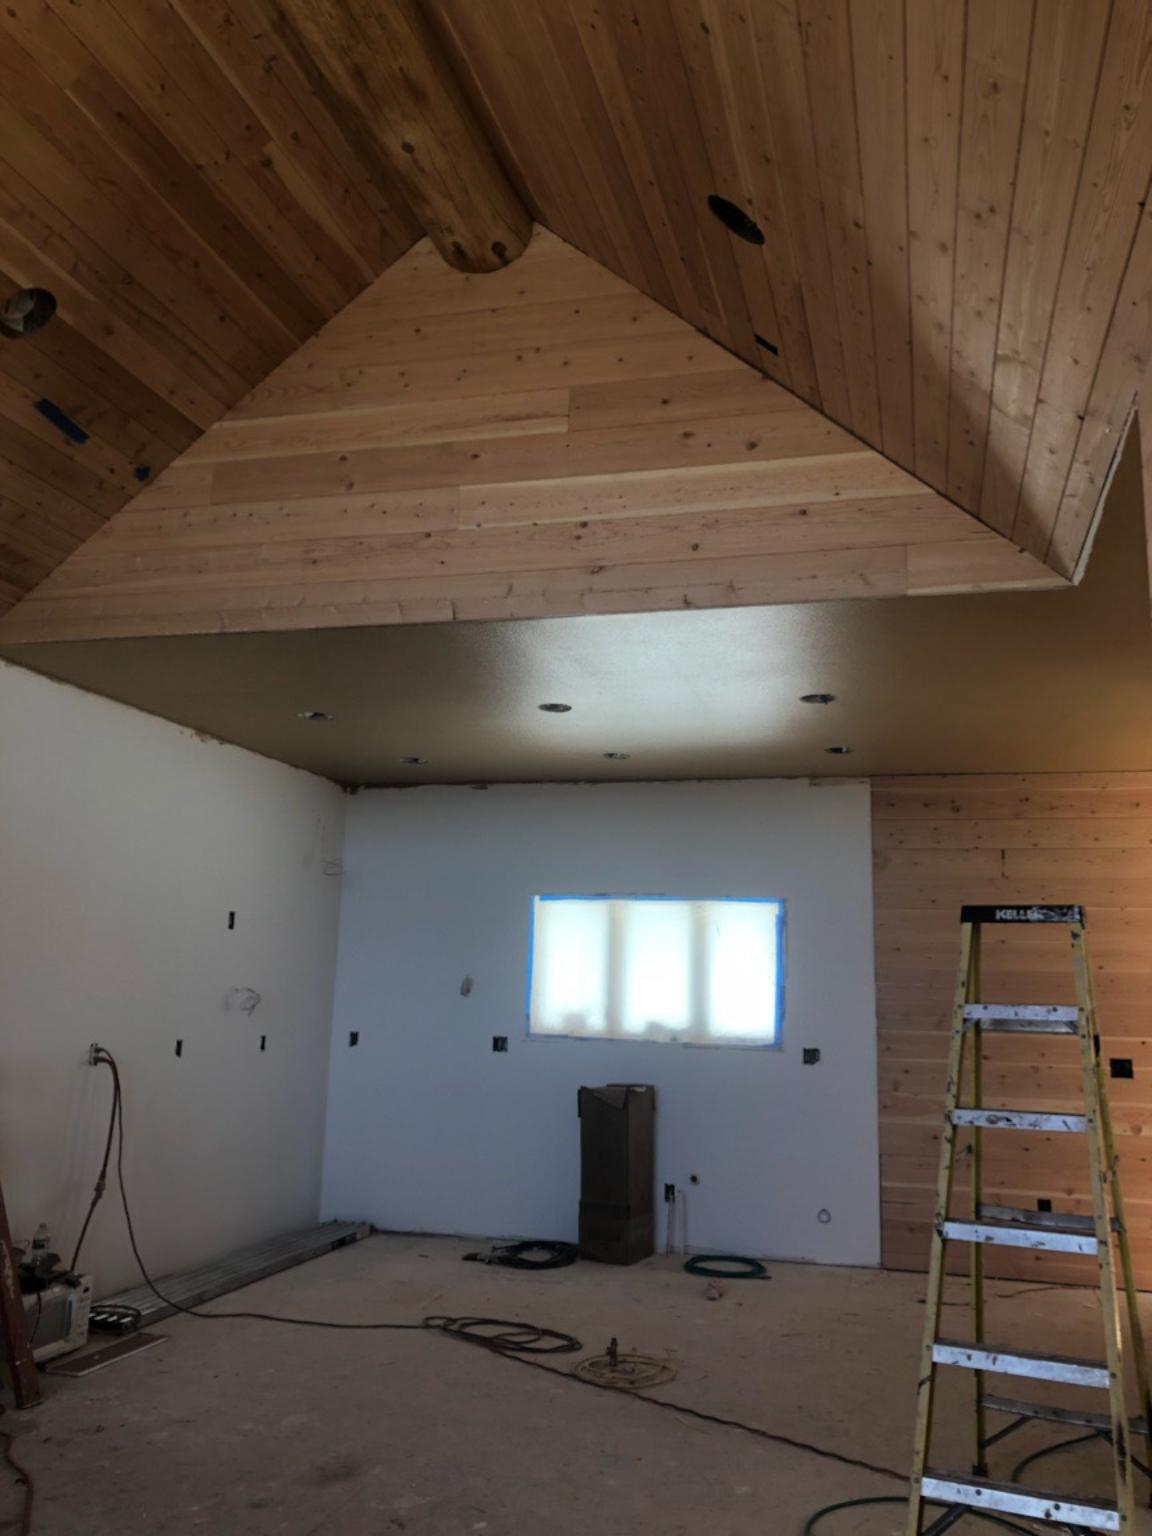 2018-03-09 SR2 House Great Room Ceiling.jpg